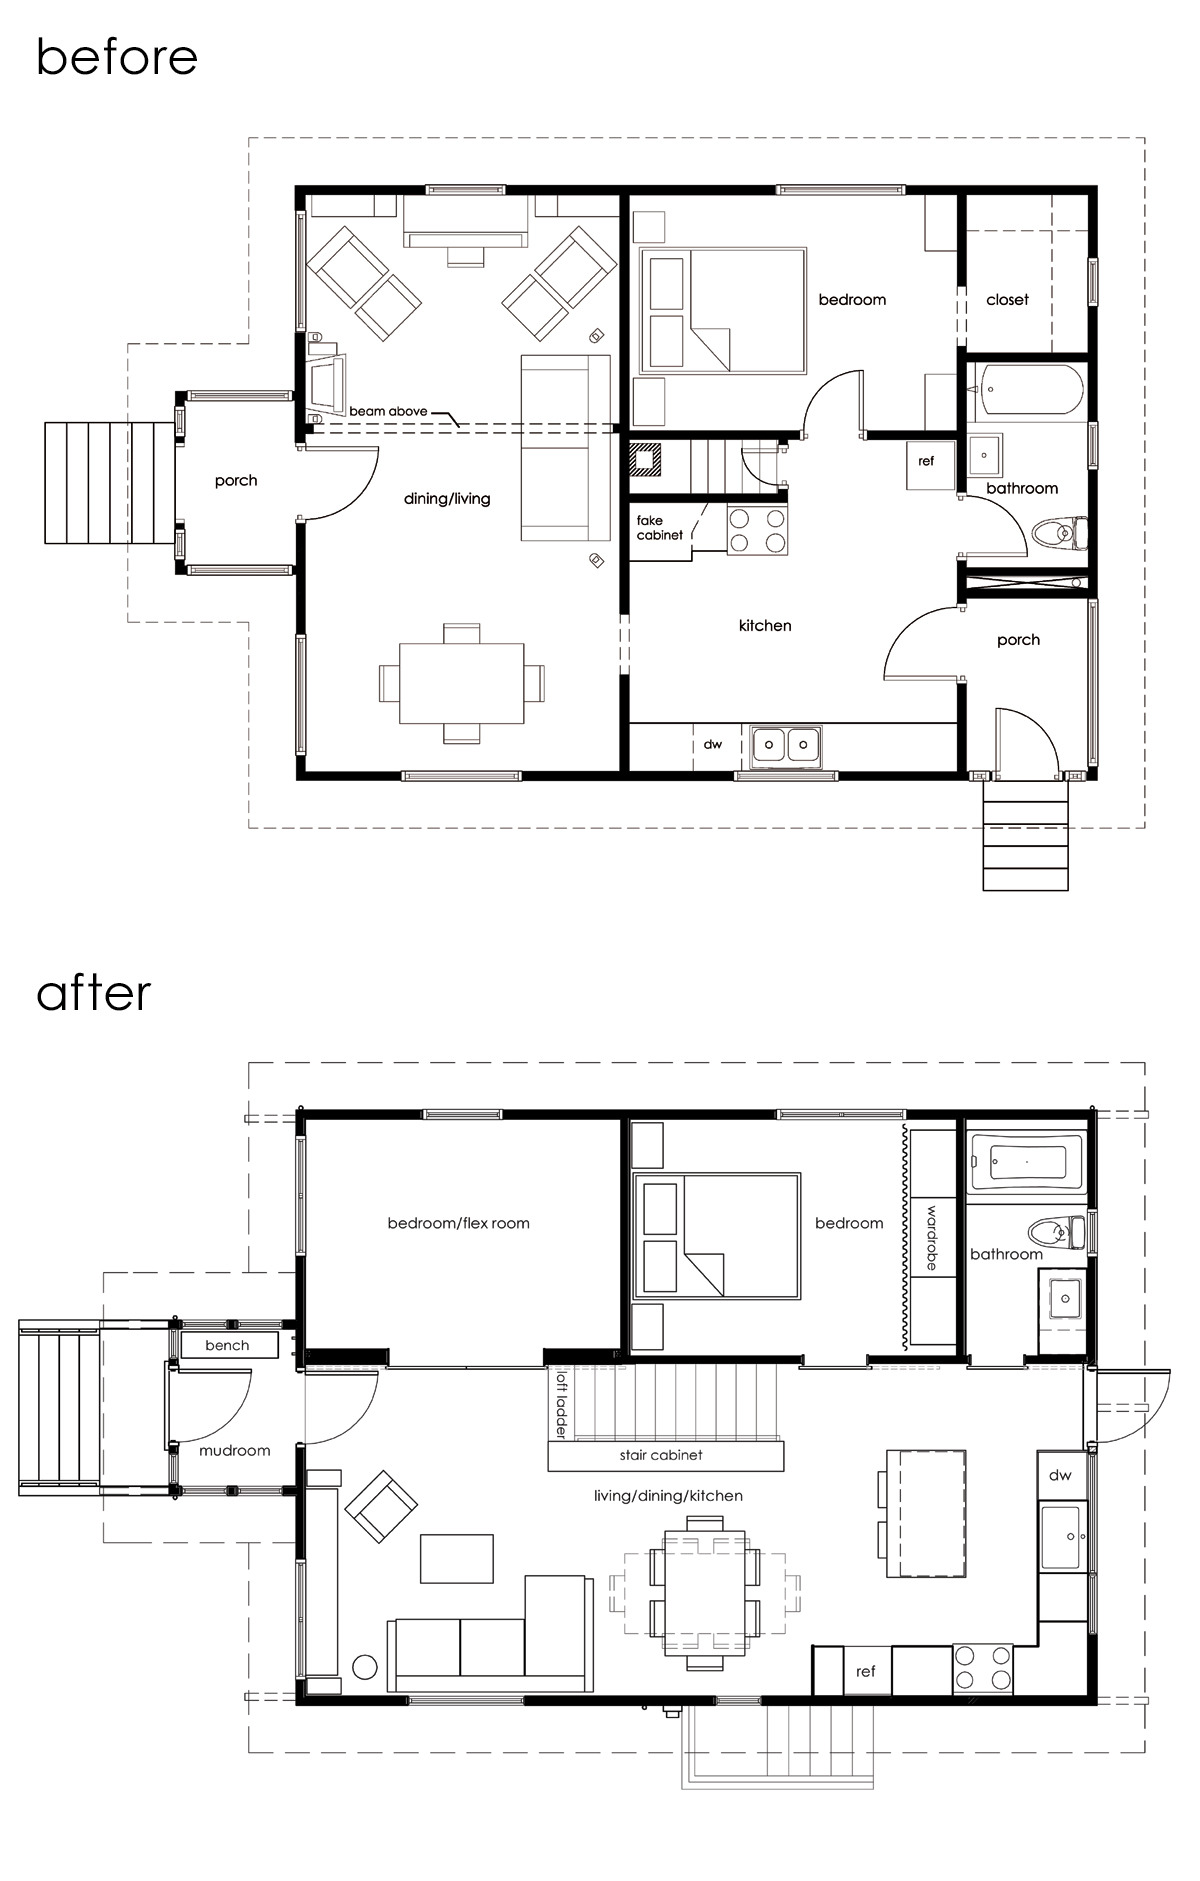 home and interior ideas draw room layout to scale architecture drawing living for free on ayoqq